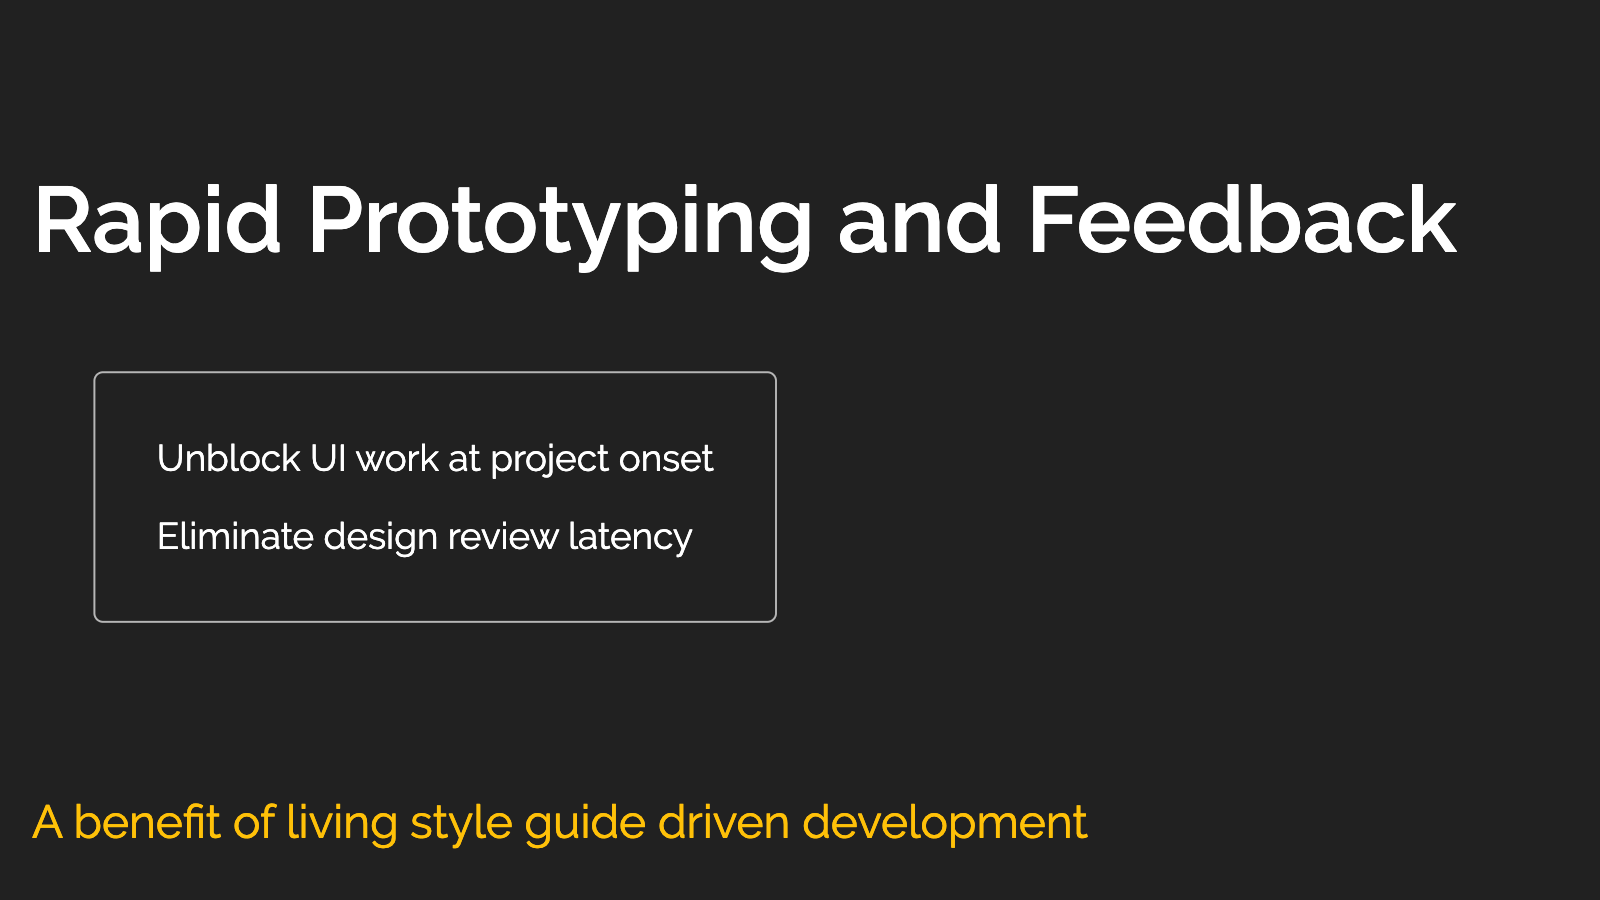 Slide content, Rapid prototyping and feedback, a benefit of living style guide driven development